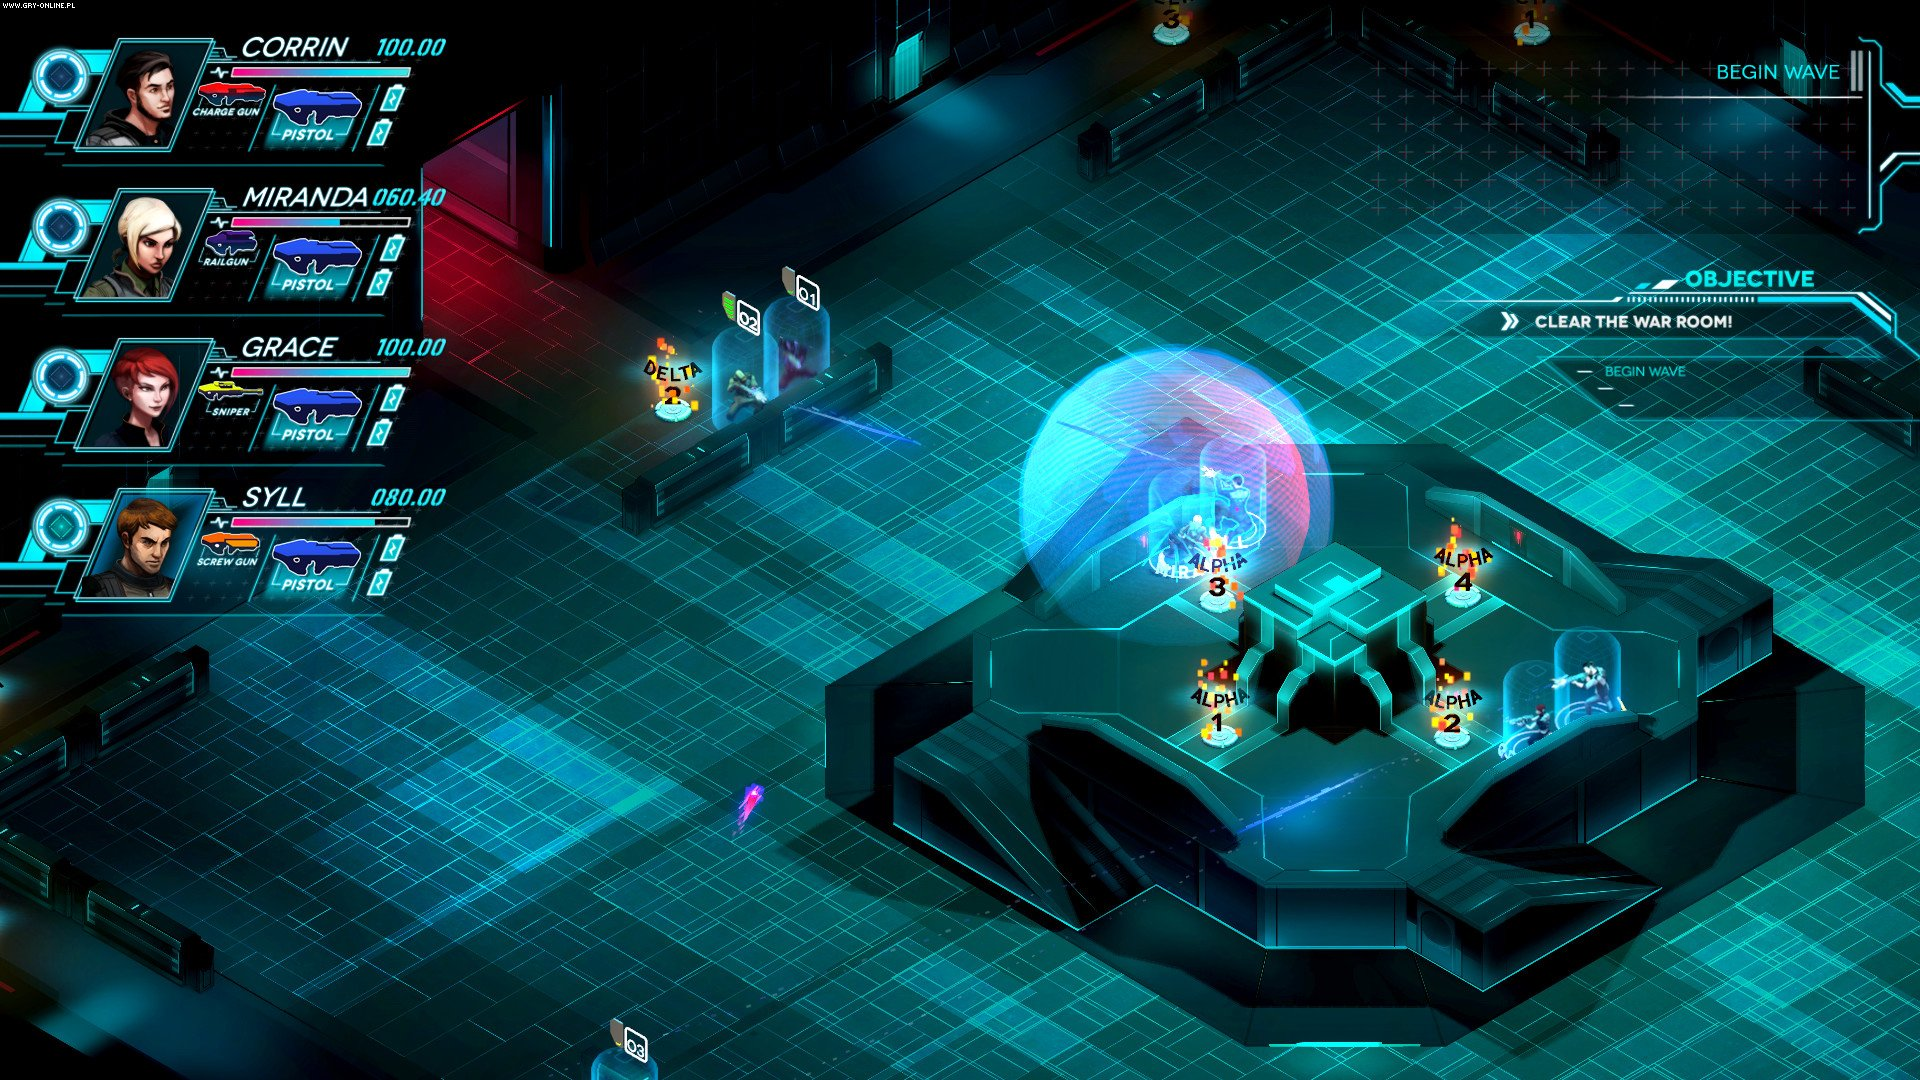 Ps4 Games Science Fiction : There came an echo screenshots gallery screenshot